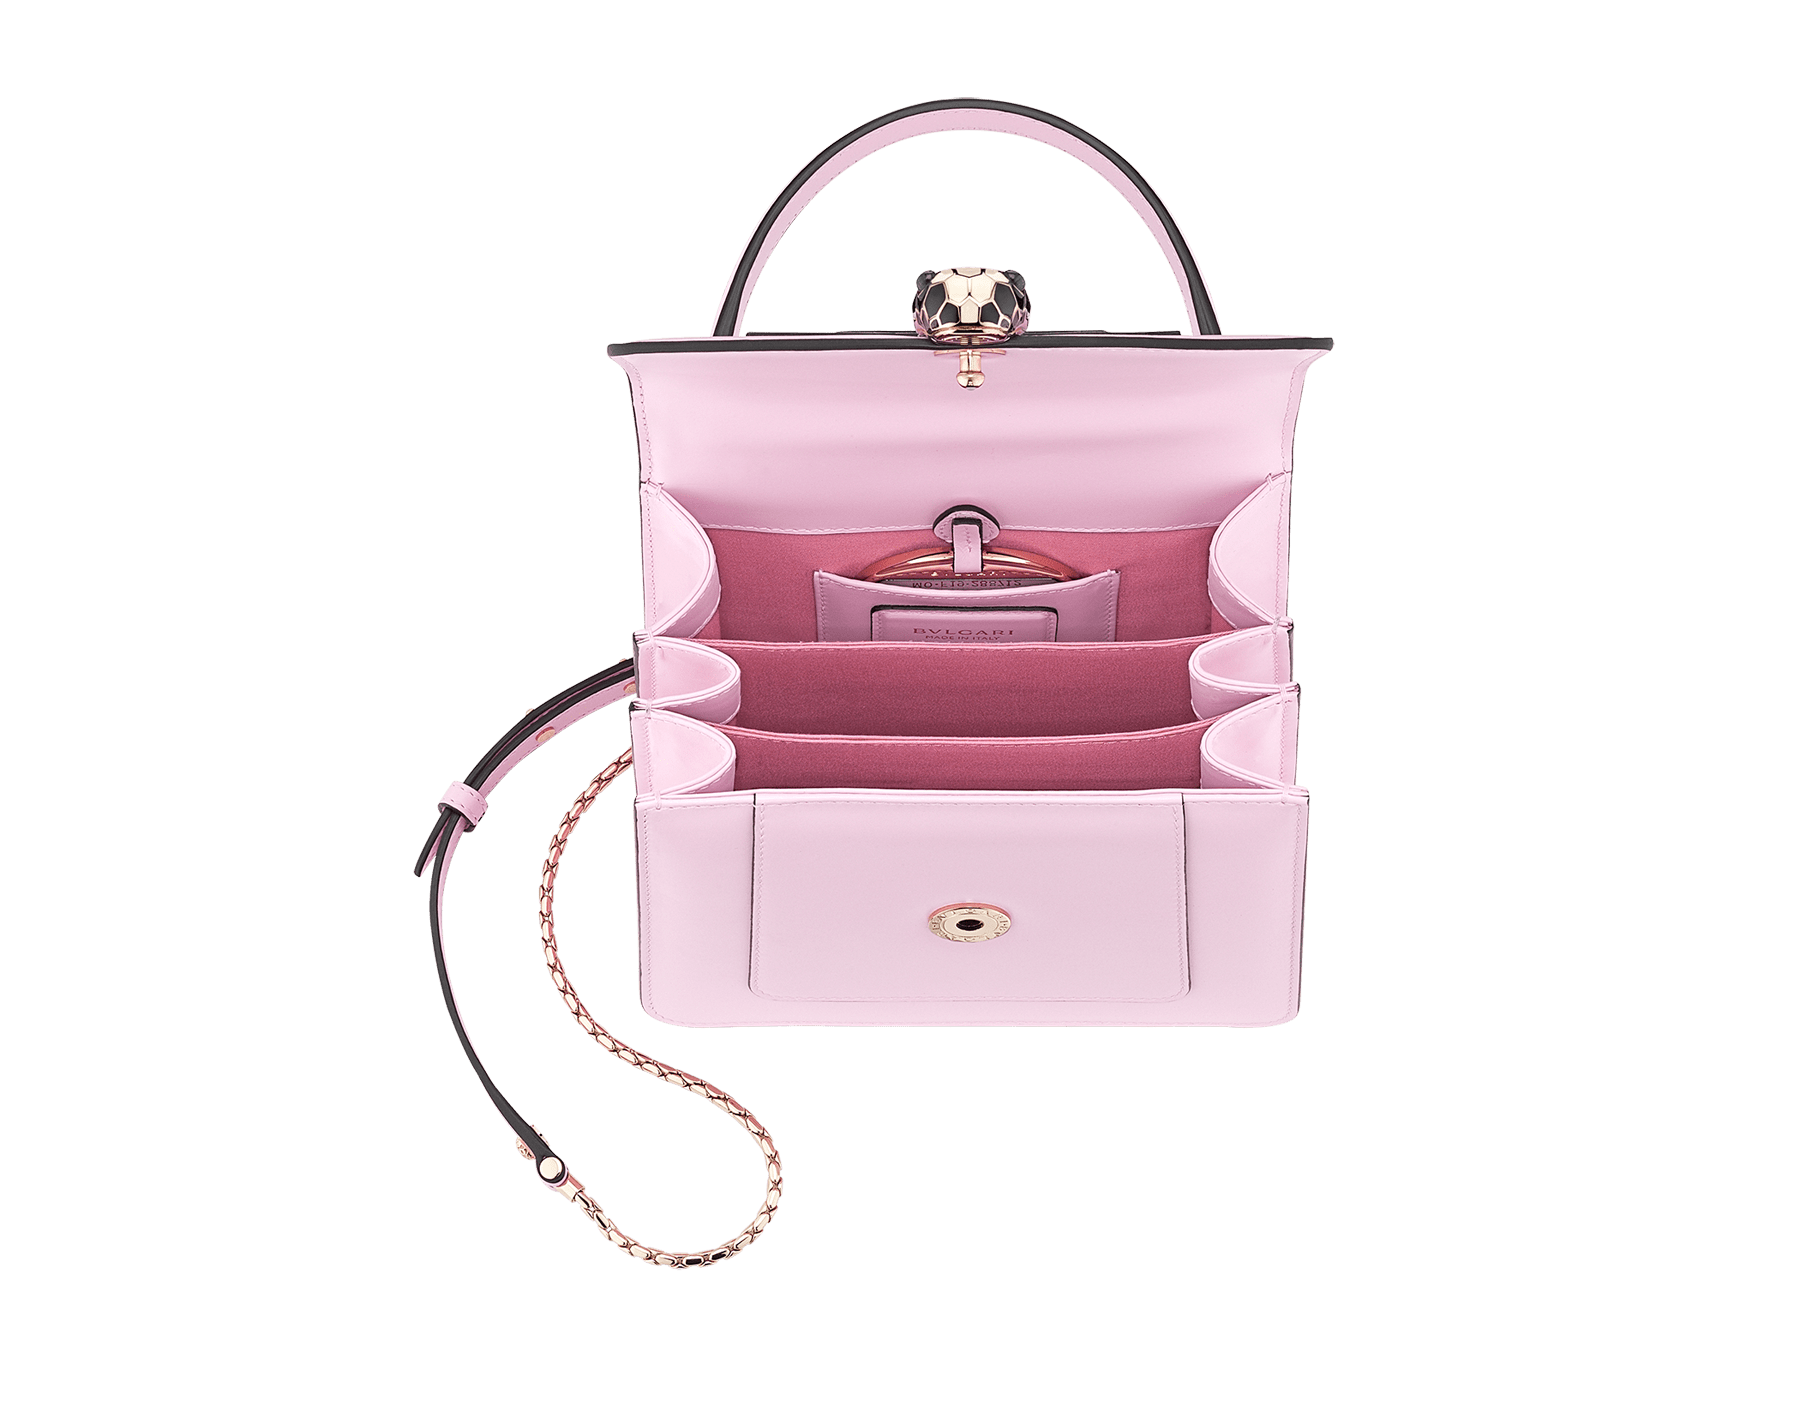 Serpenti Forever crossbody bag in rosa di francia calf leather. Iconic snakehead closure in light gold plated brass embellished with black and white enamel and green malachite eyes. 288712 image 4